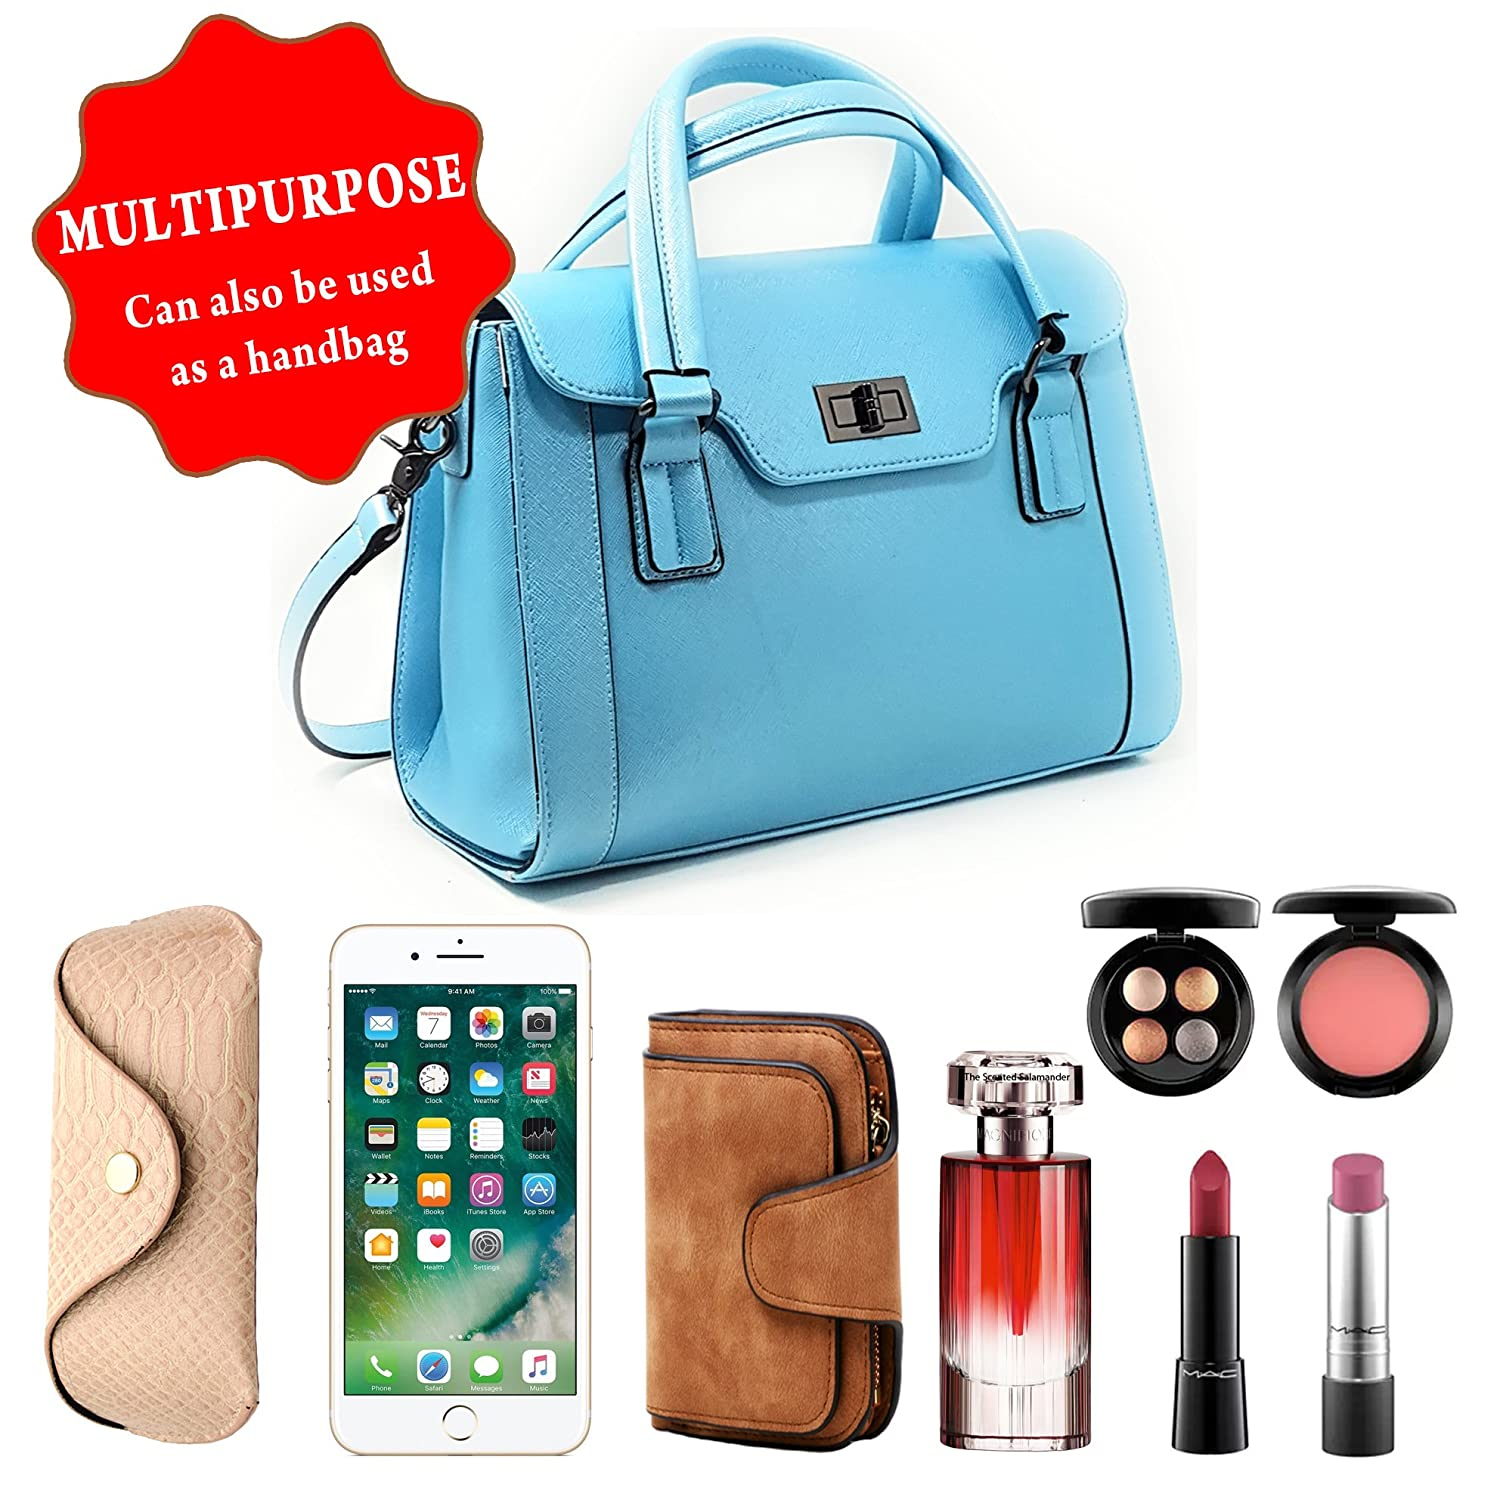 a1be420d343e SPECIAL OFFER  Purple Relic DSLR Camera Bag for Women  8-Pocket Ladies  Handbag with Removable Camera Case (Blue)  Amazon.co.uk  Shoes   Bags